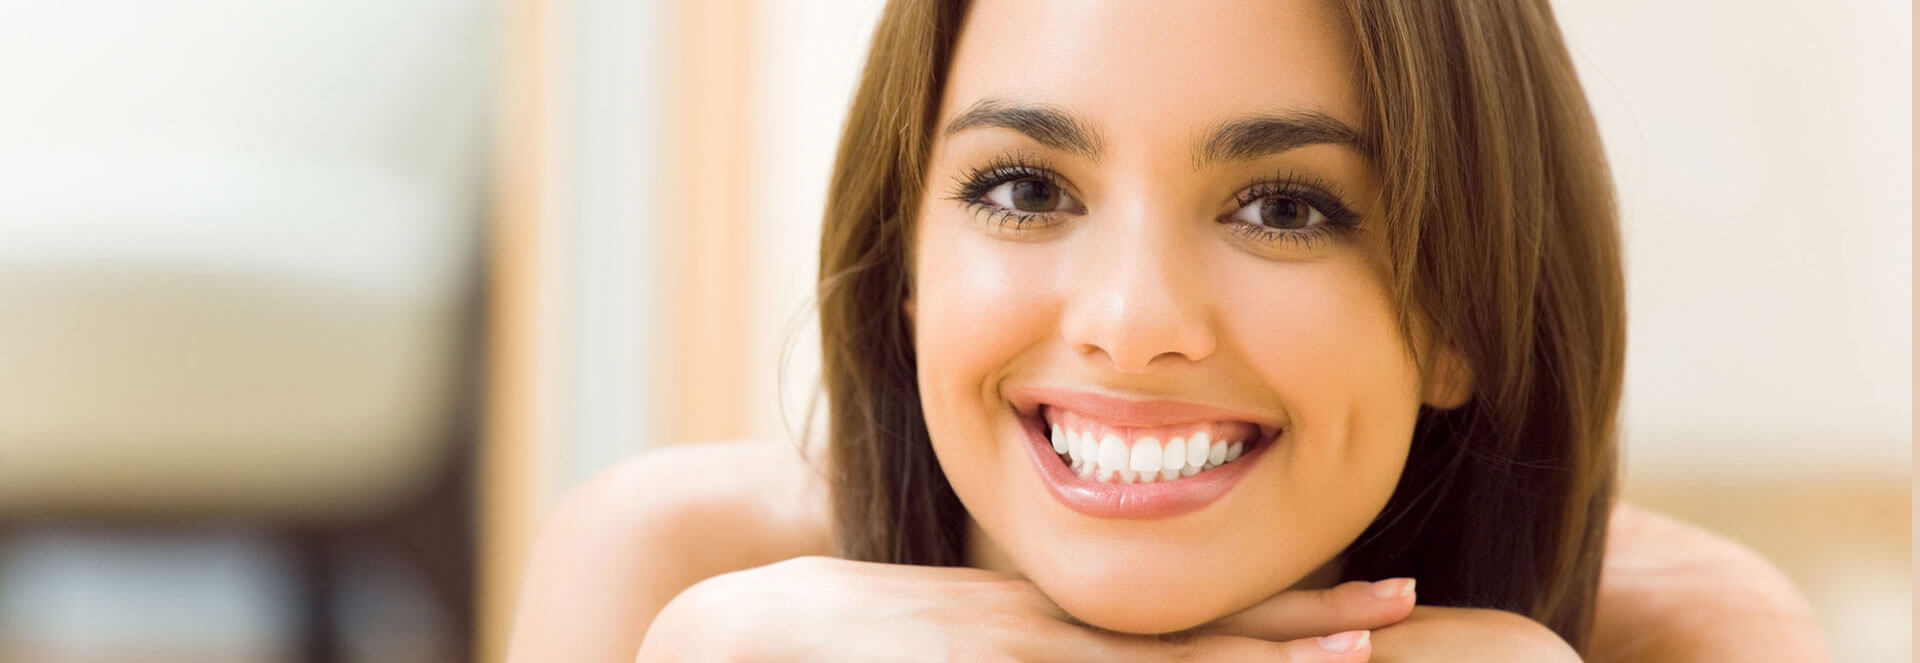 Young beautiful woman smiling after teeth whitening treatment